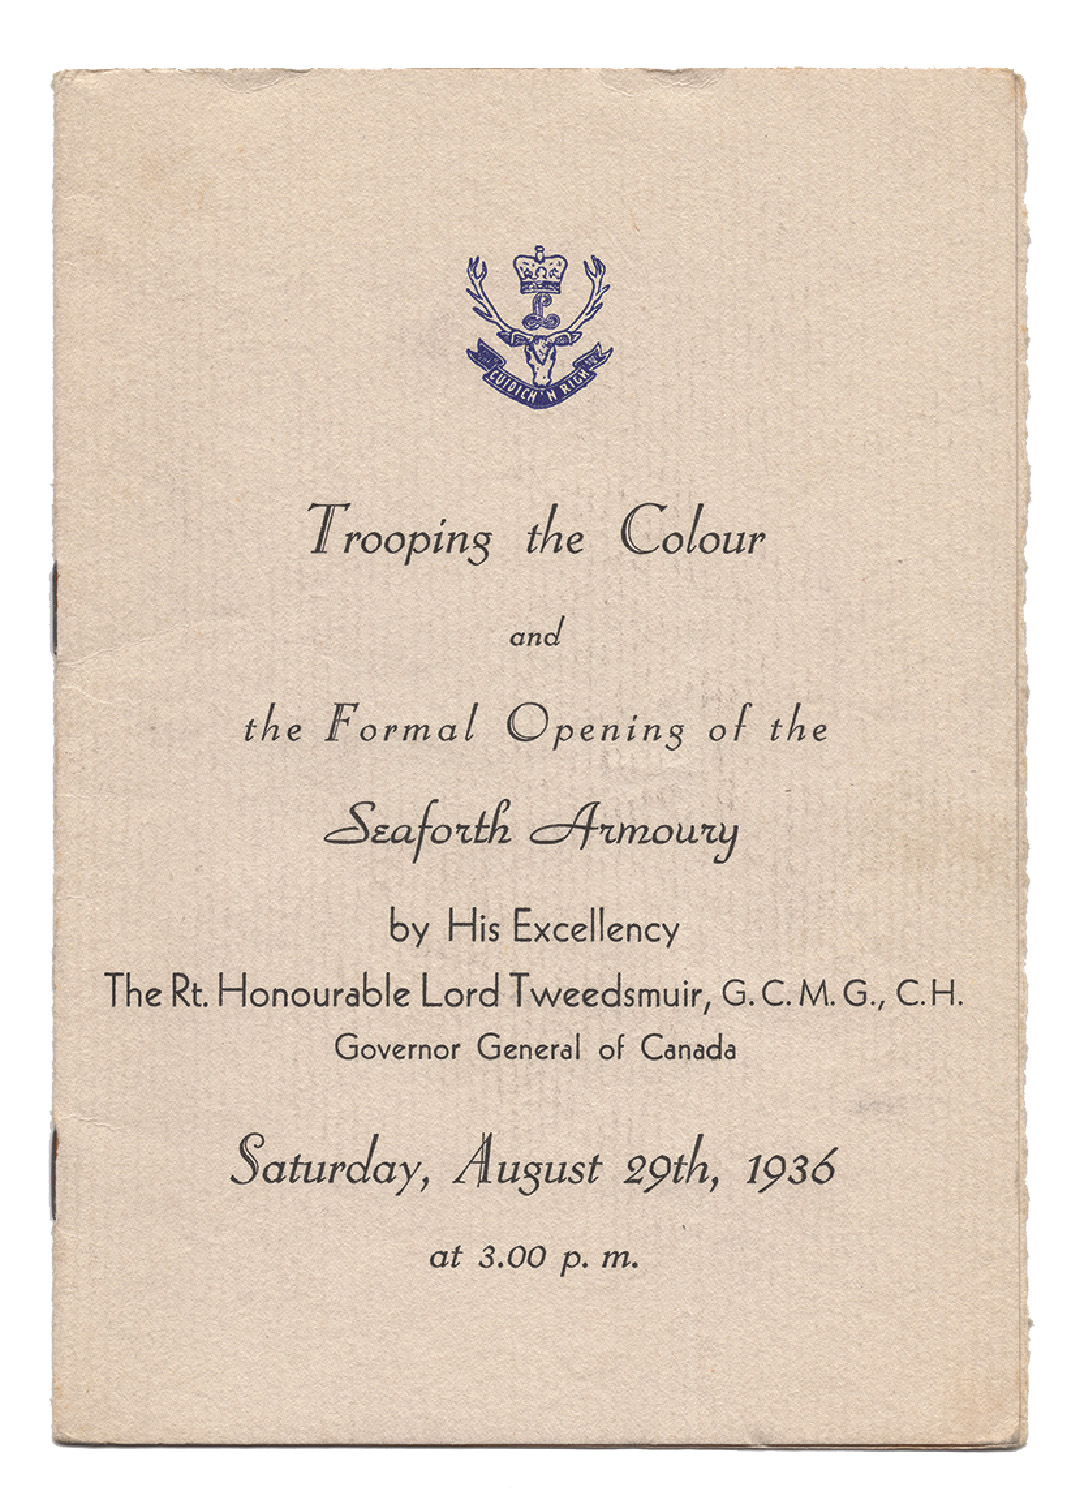 The program for the formal opening of the Seaforth Armoury.